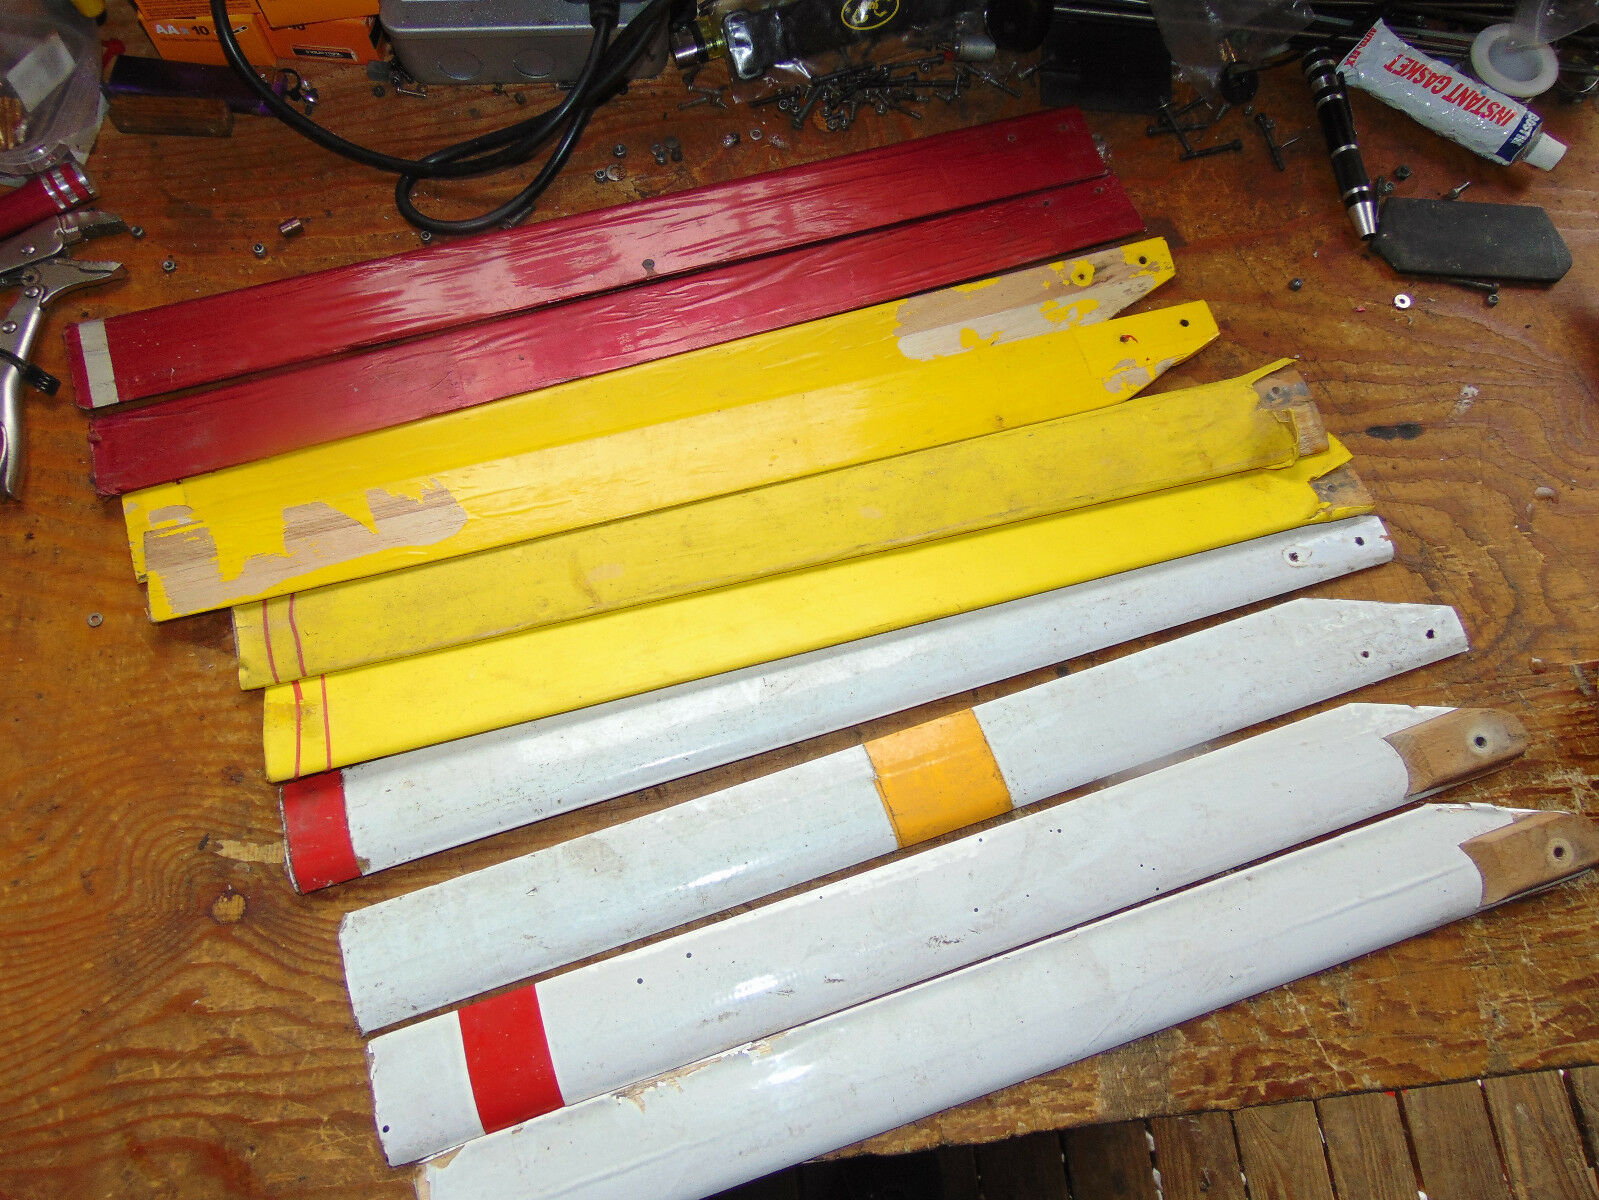 5x (PAIRS) 480 mm WOODEN MAIN redOR BLADES  SUIT VINTAGE HELI